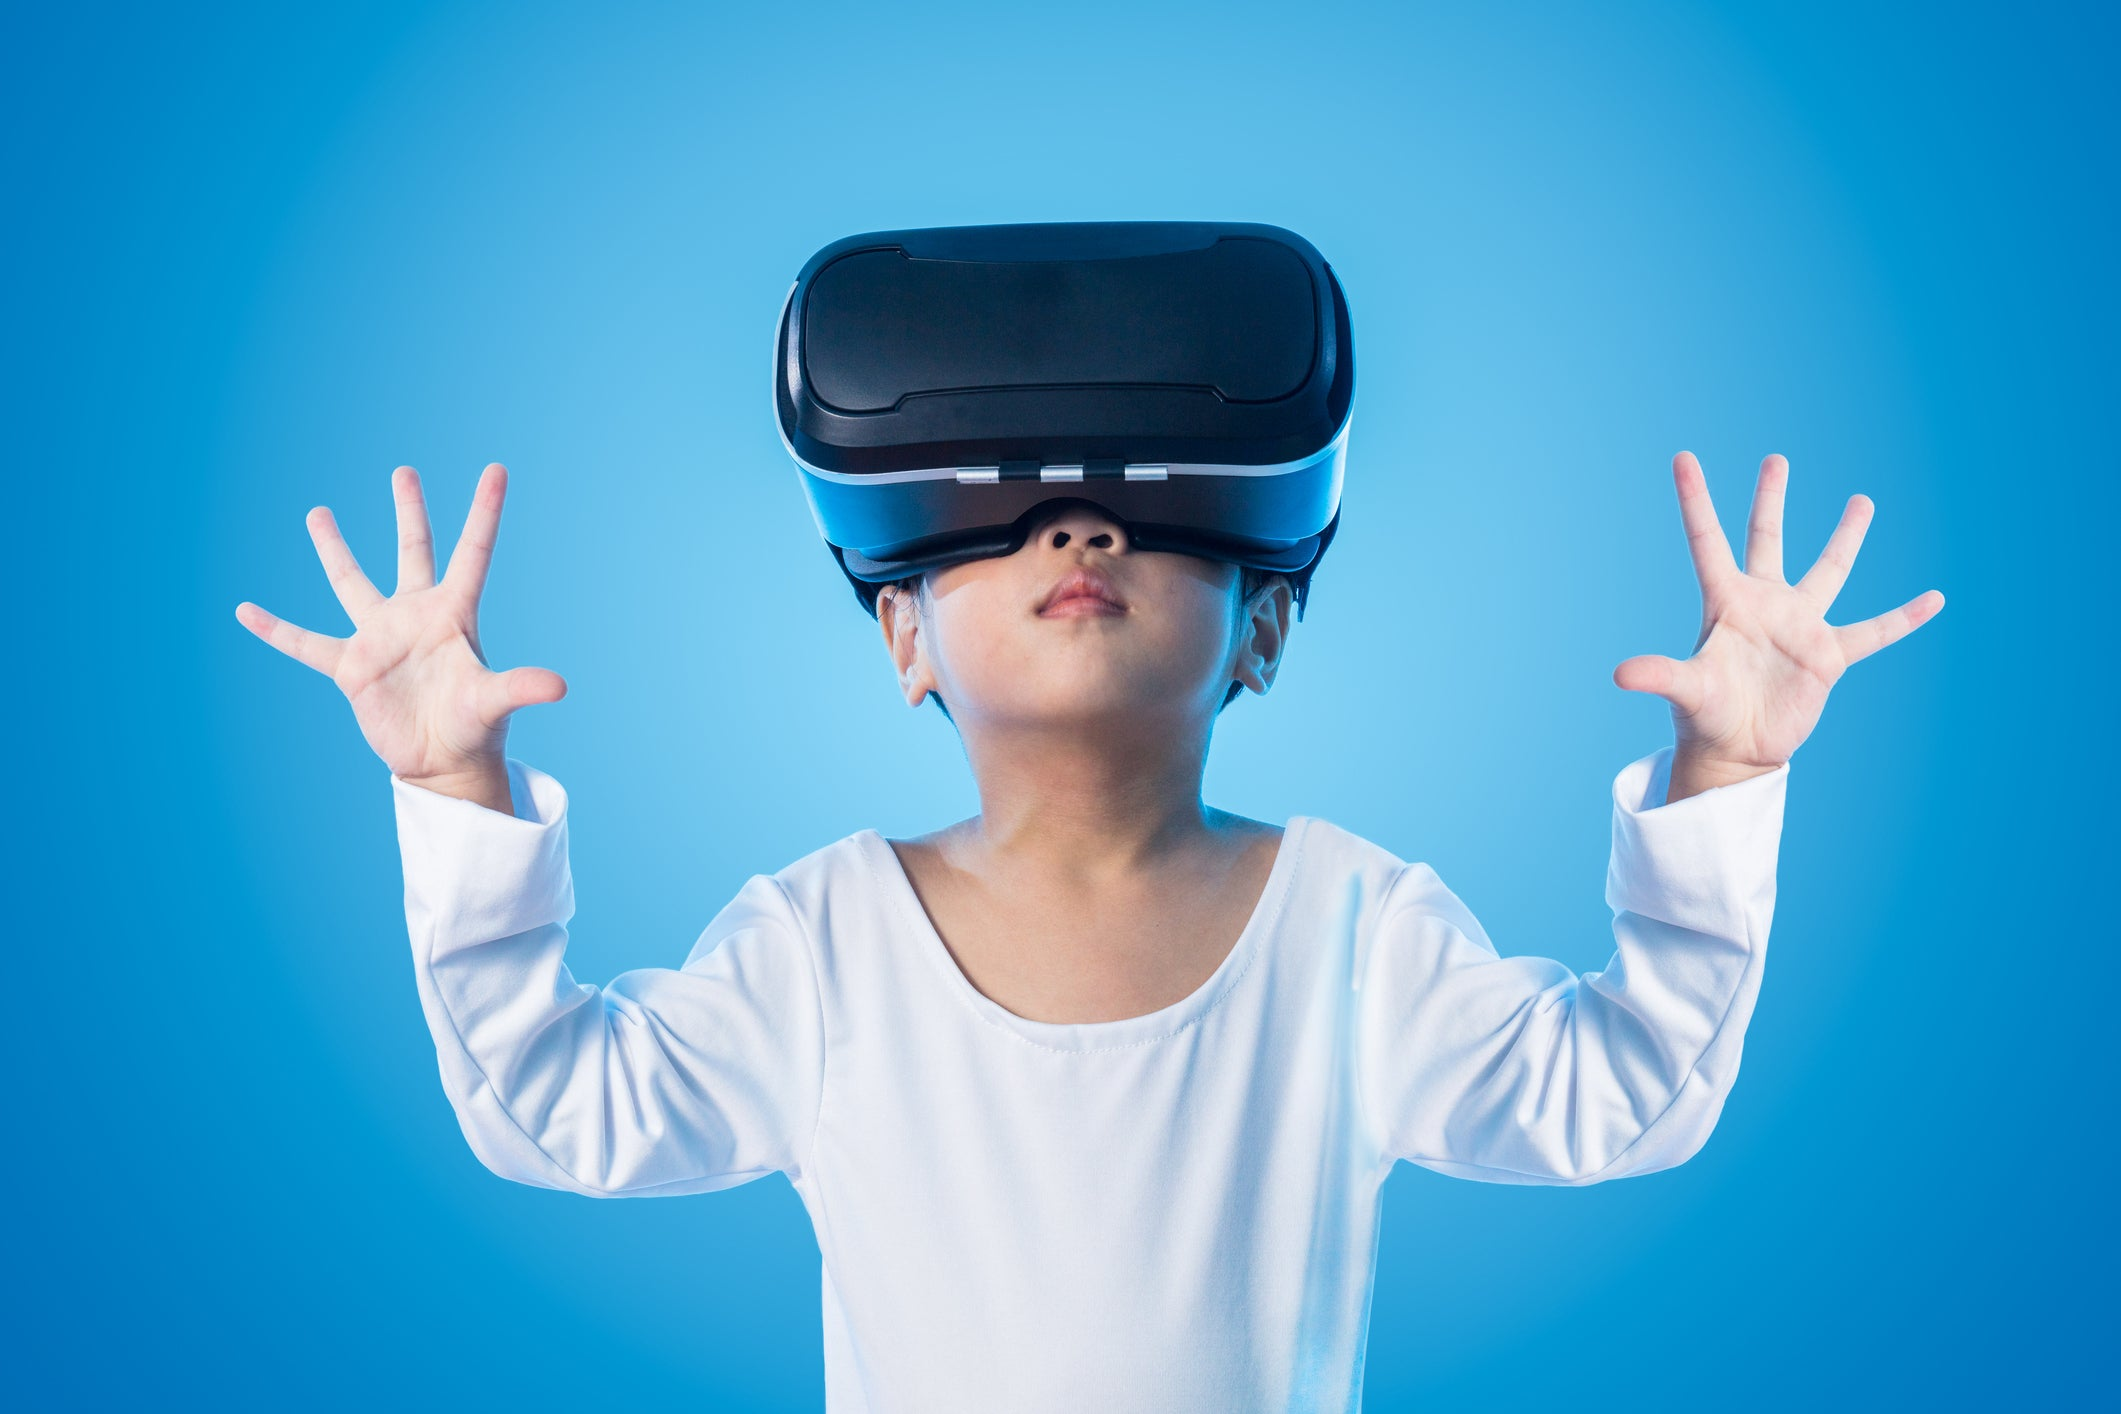 Is Virtual Reality the Future or Another Disappointing